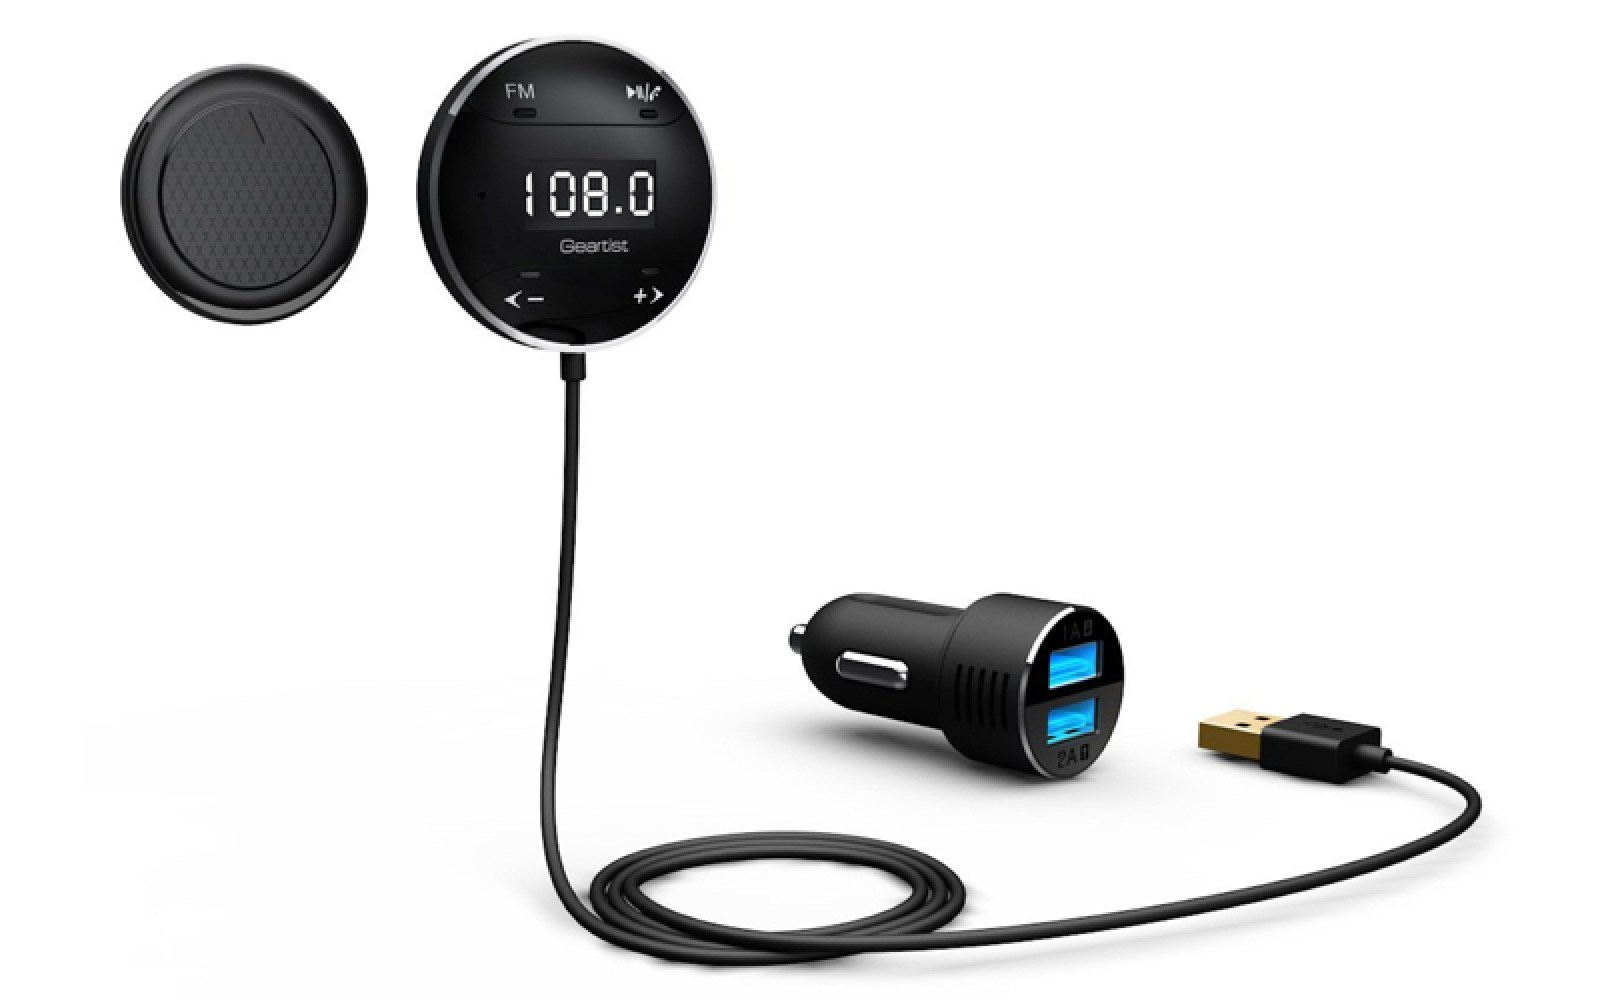 Smartphone Accessories: Lumsing Bluetooth FM Transmitter $17, Tronsmart Quick Charge 2.0 18W USB Charger $6, more